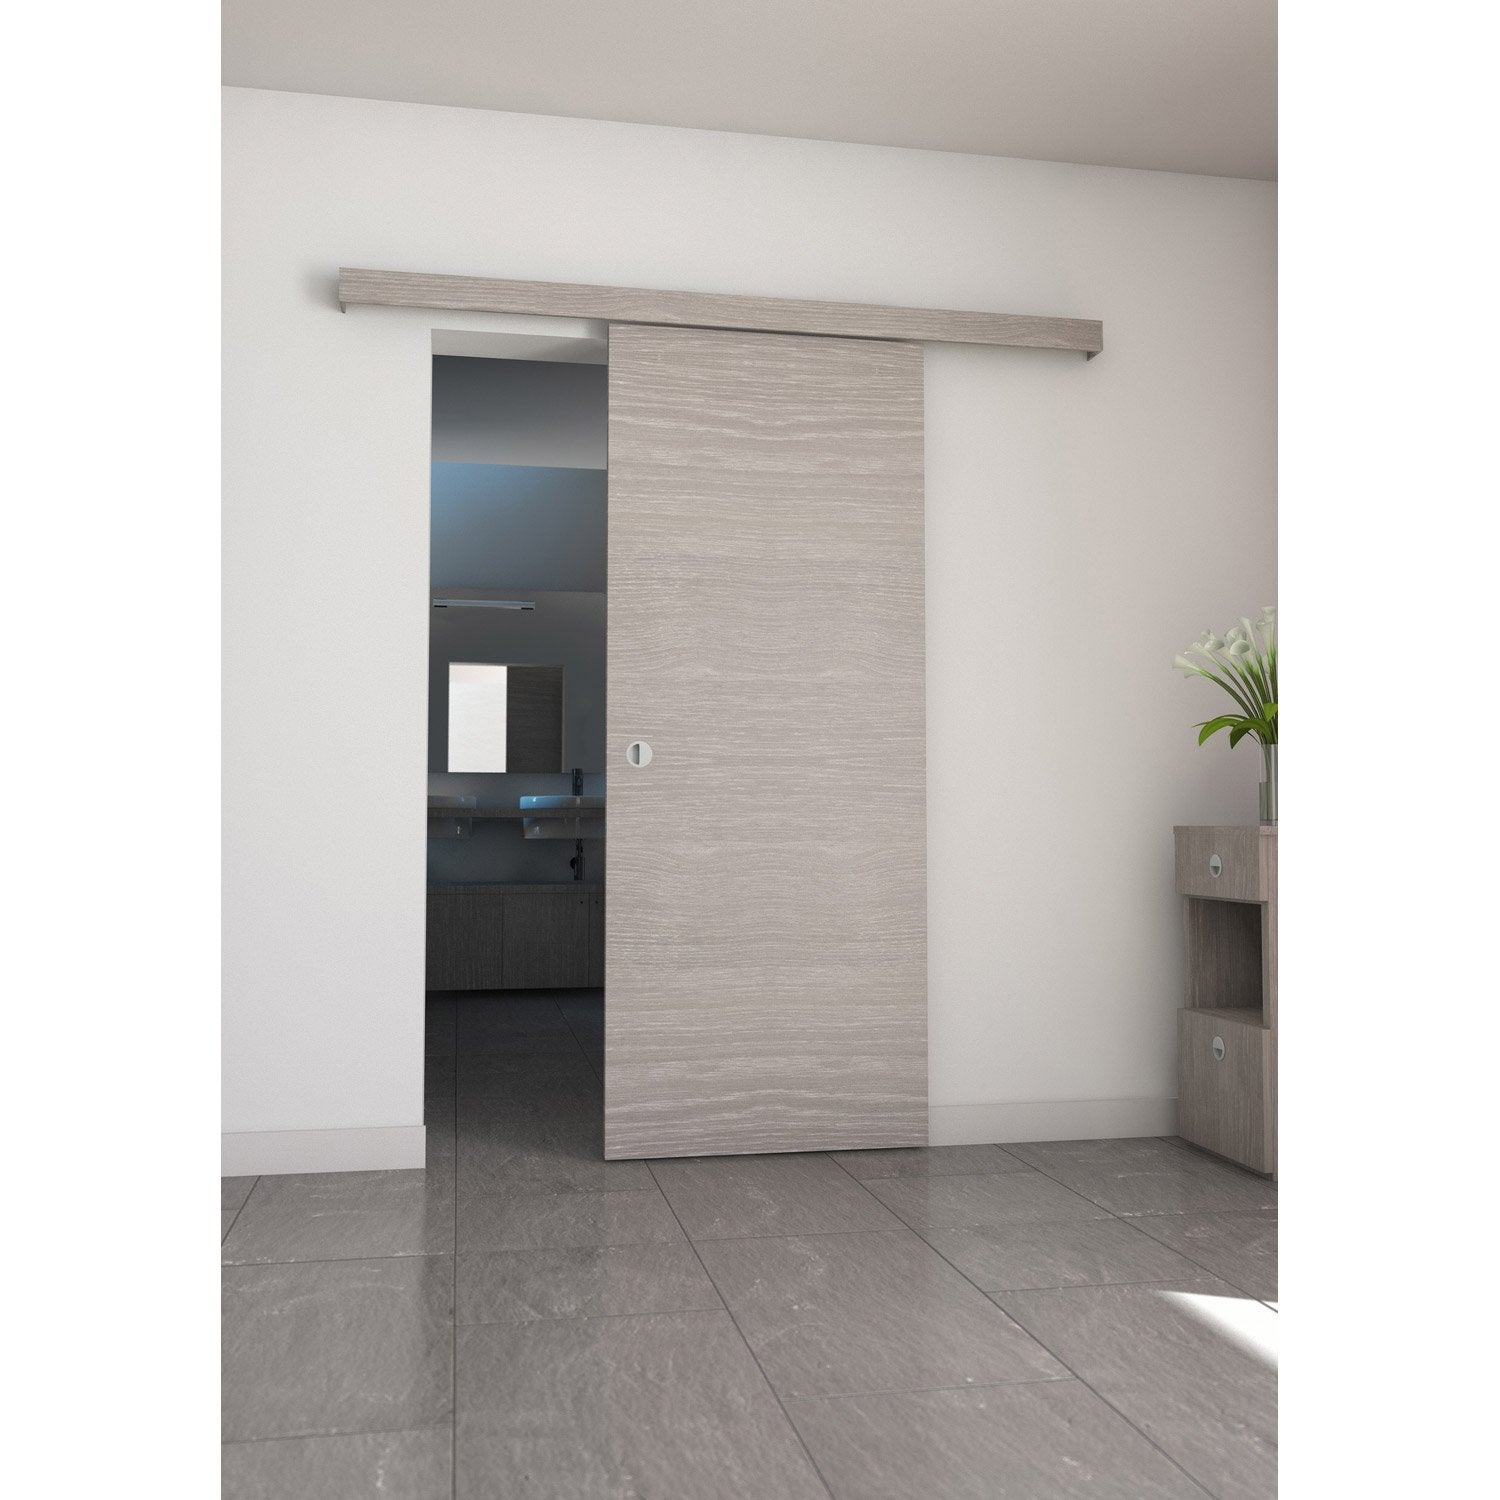 Ensemble porte coulissante coulicool mdf rev tu aluminium for Porte coulissante wc